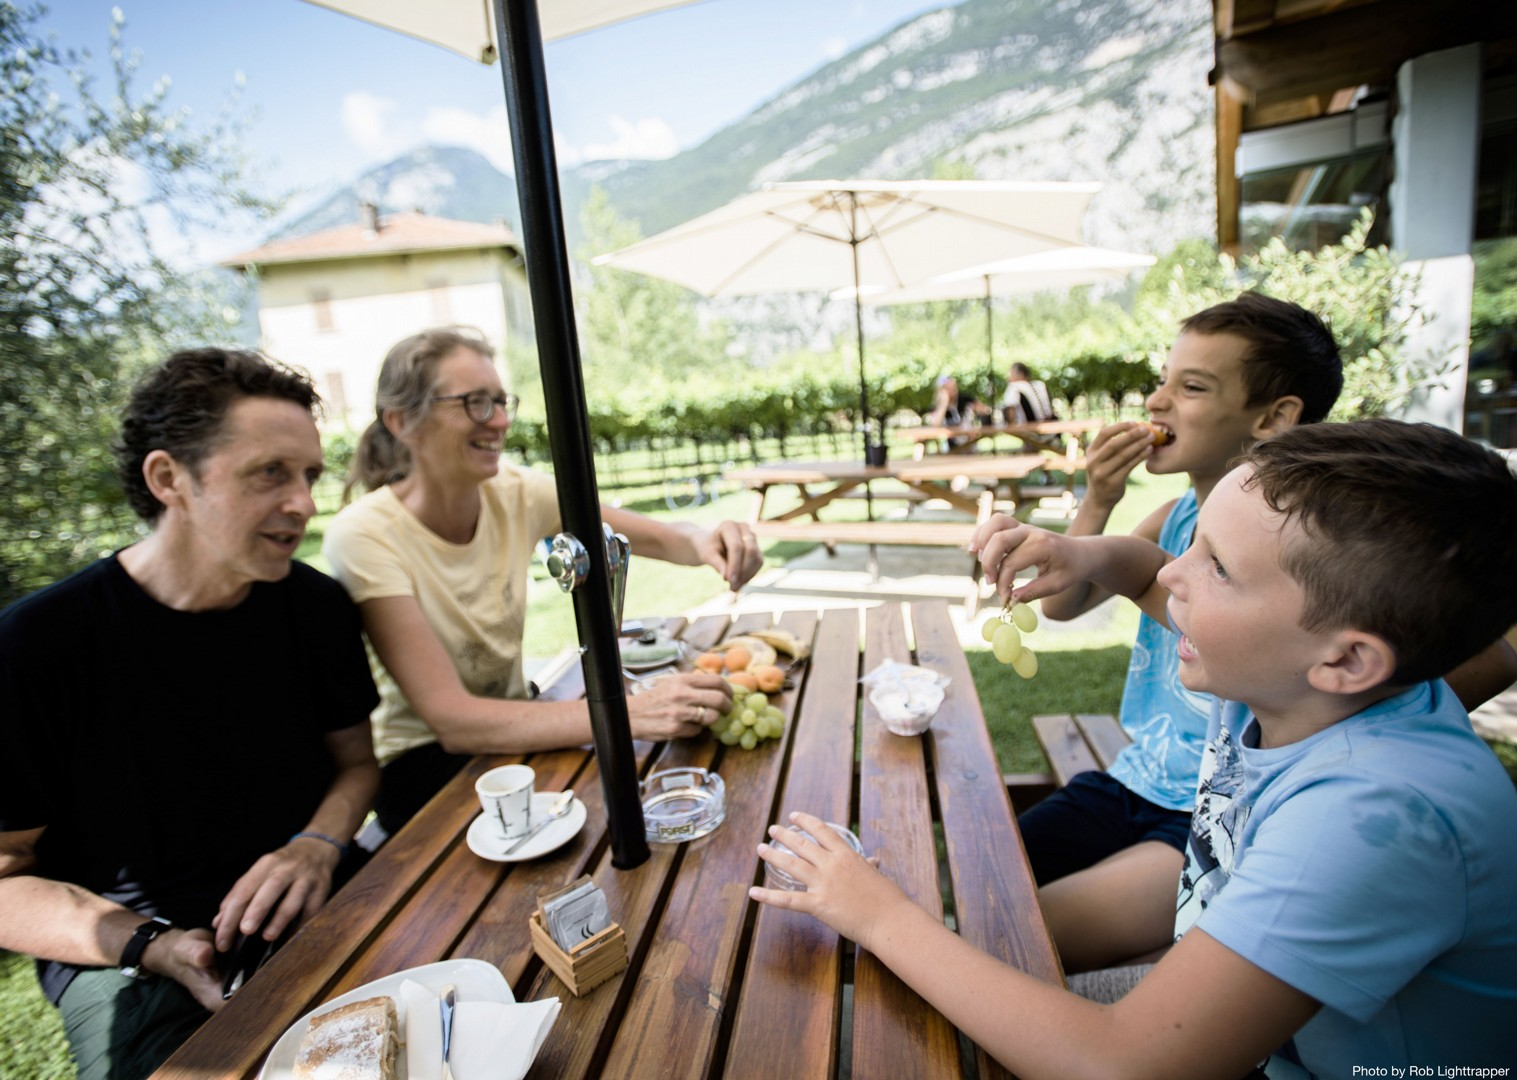 picnic-italy-lake-garda-family.jpg - Italy - Lake Garda Explorer - Self-Guided Family Cycling Holiday - Italia Leisure and Family Cycling